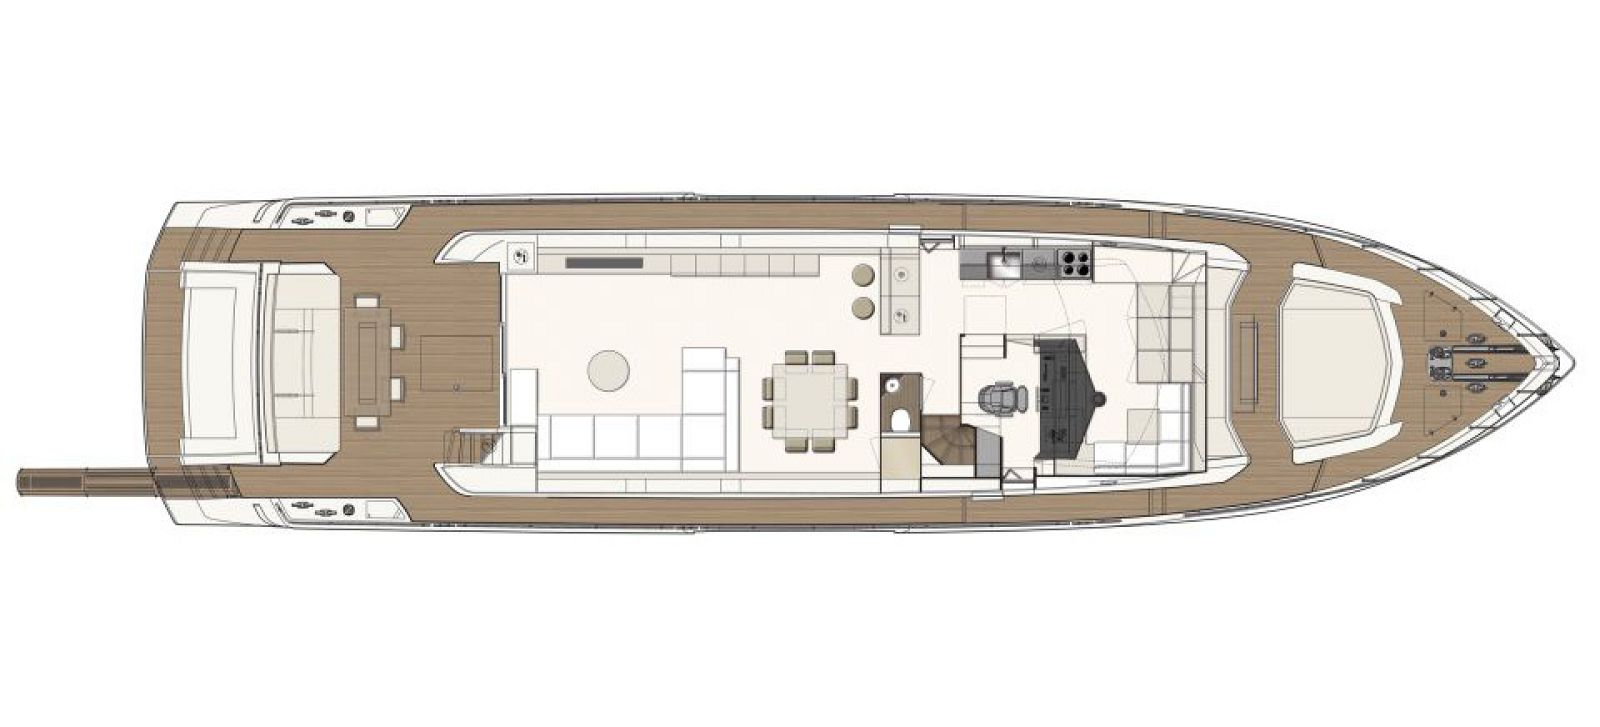 Ferretti Yachts 850 Layout - New Luxury Yacht for Sale >